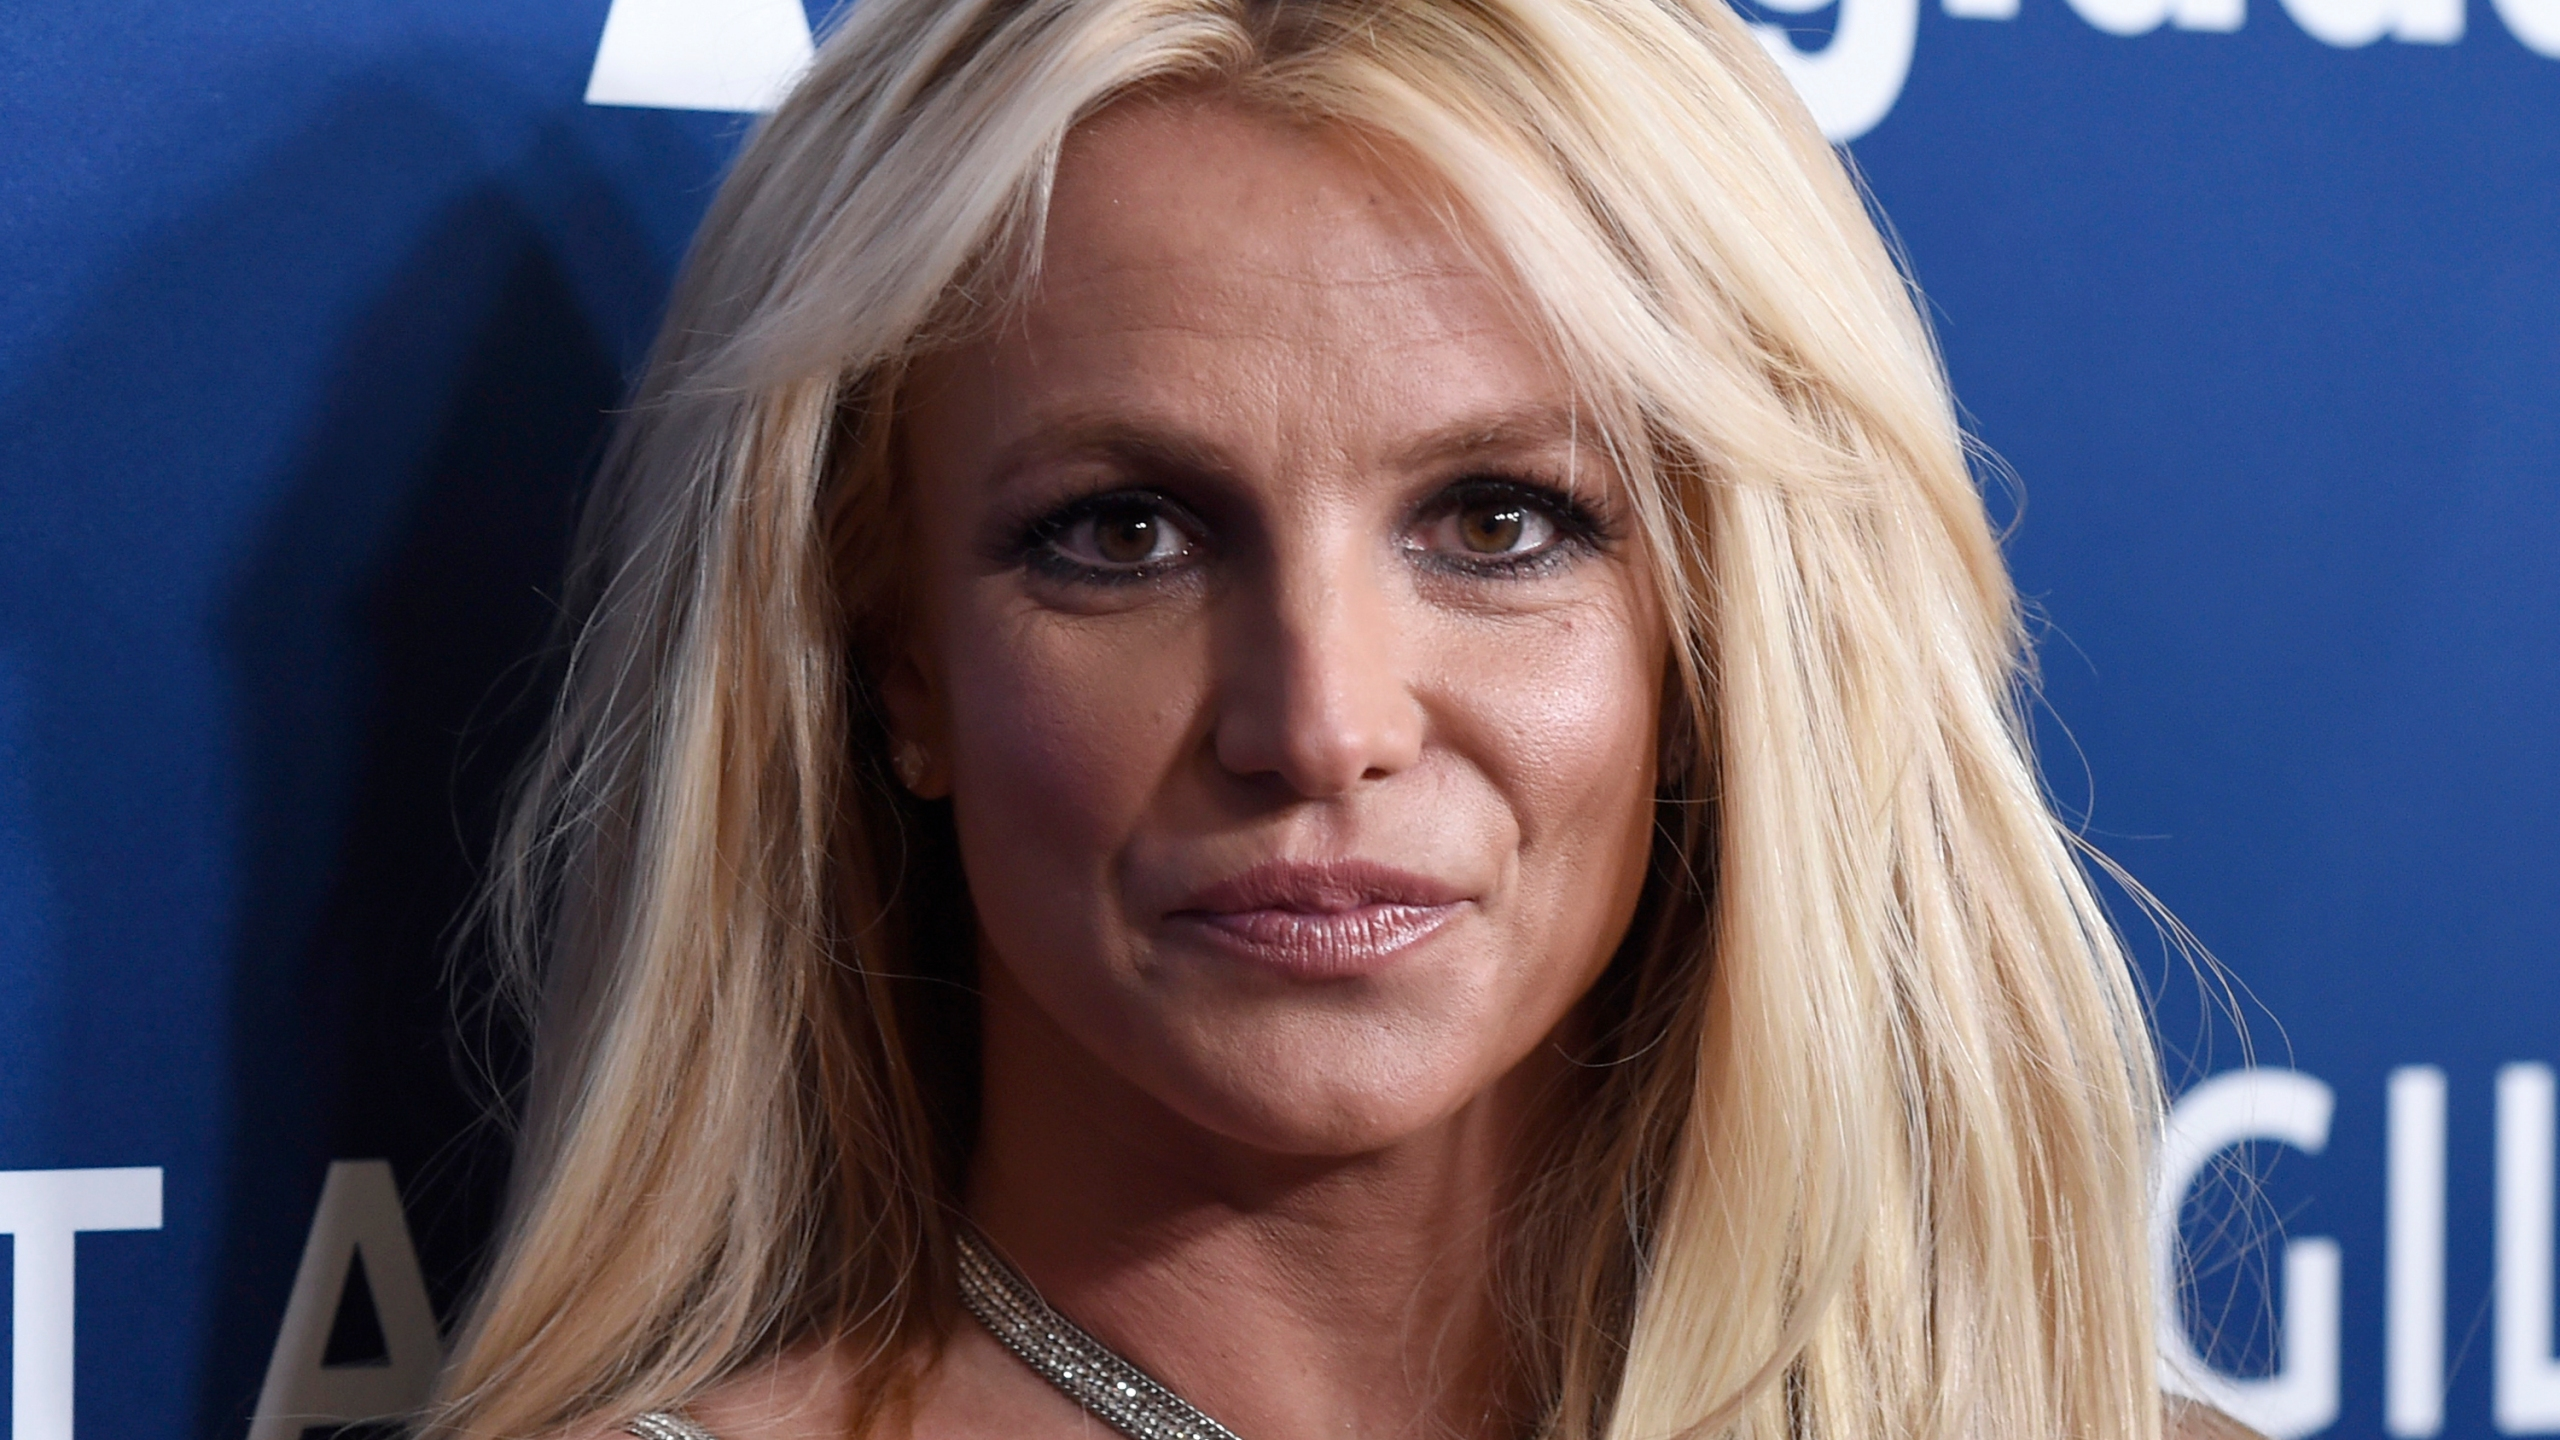 Britney Spears arrives at the 29th annual GLAAD Media Awards on April 12, 2018, in Beverly Hills. (Chris Pizzello / Invision / Associated Press)